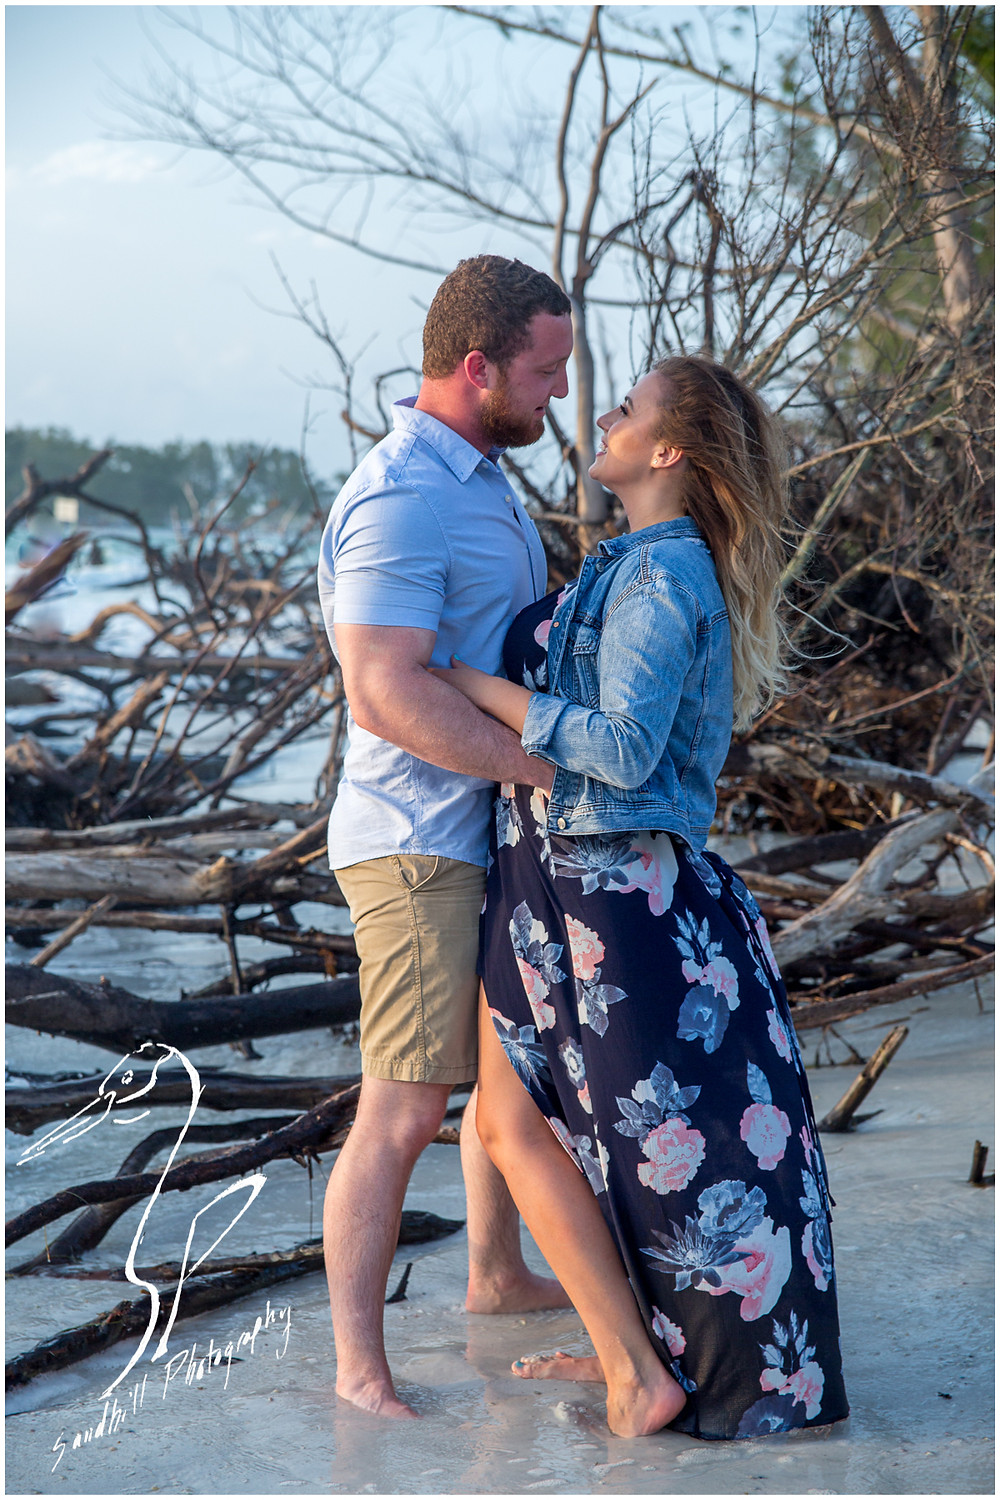 Longboat Key Engagement Photographer, engaged couple embracing on a drift wood strewn beach